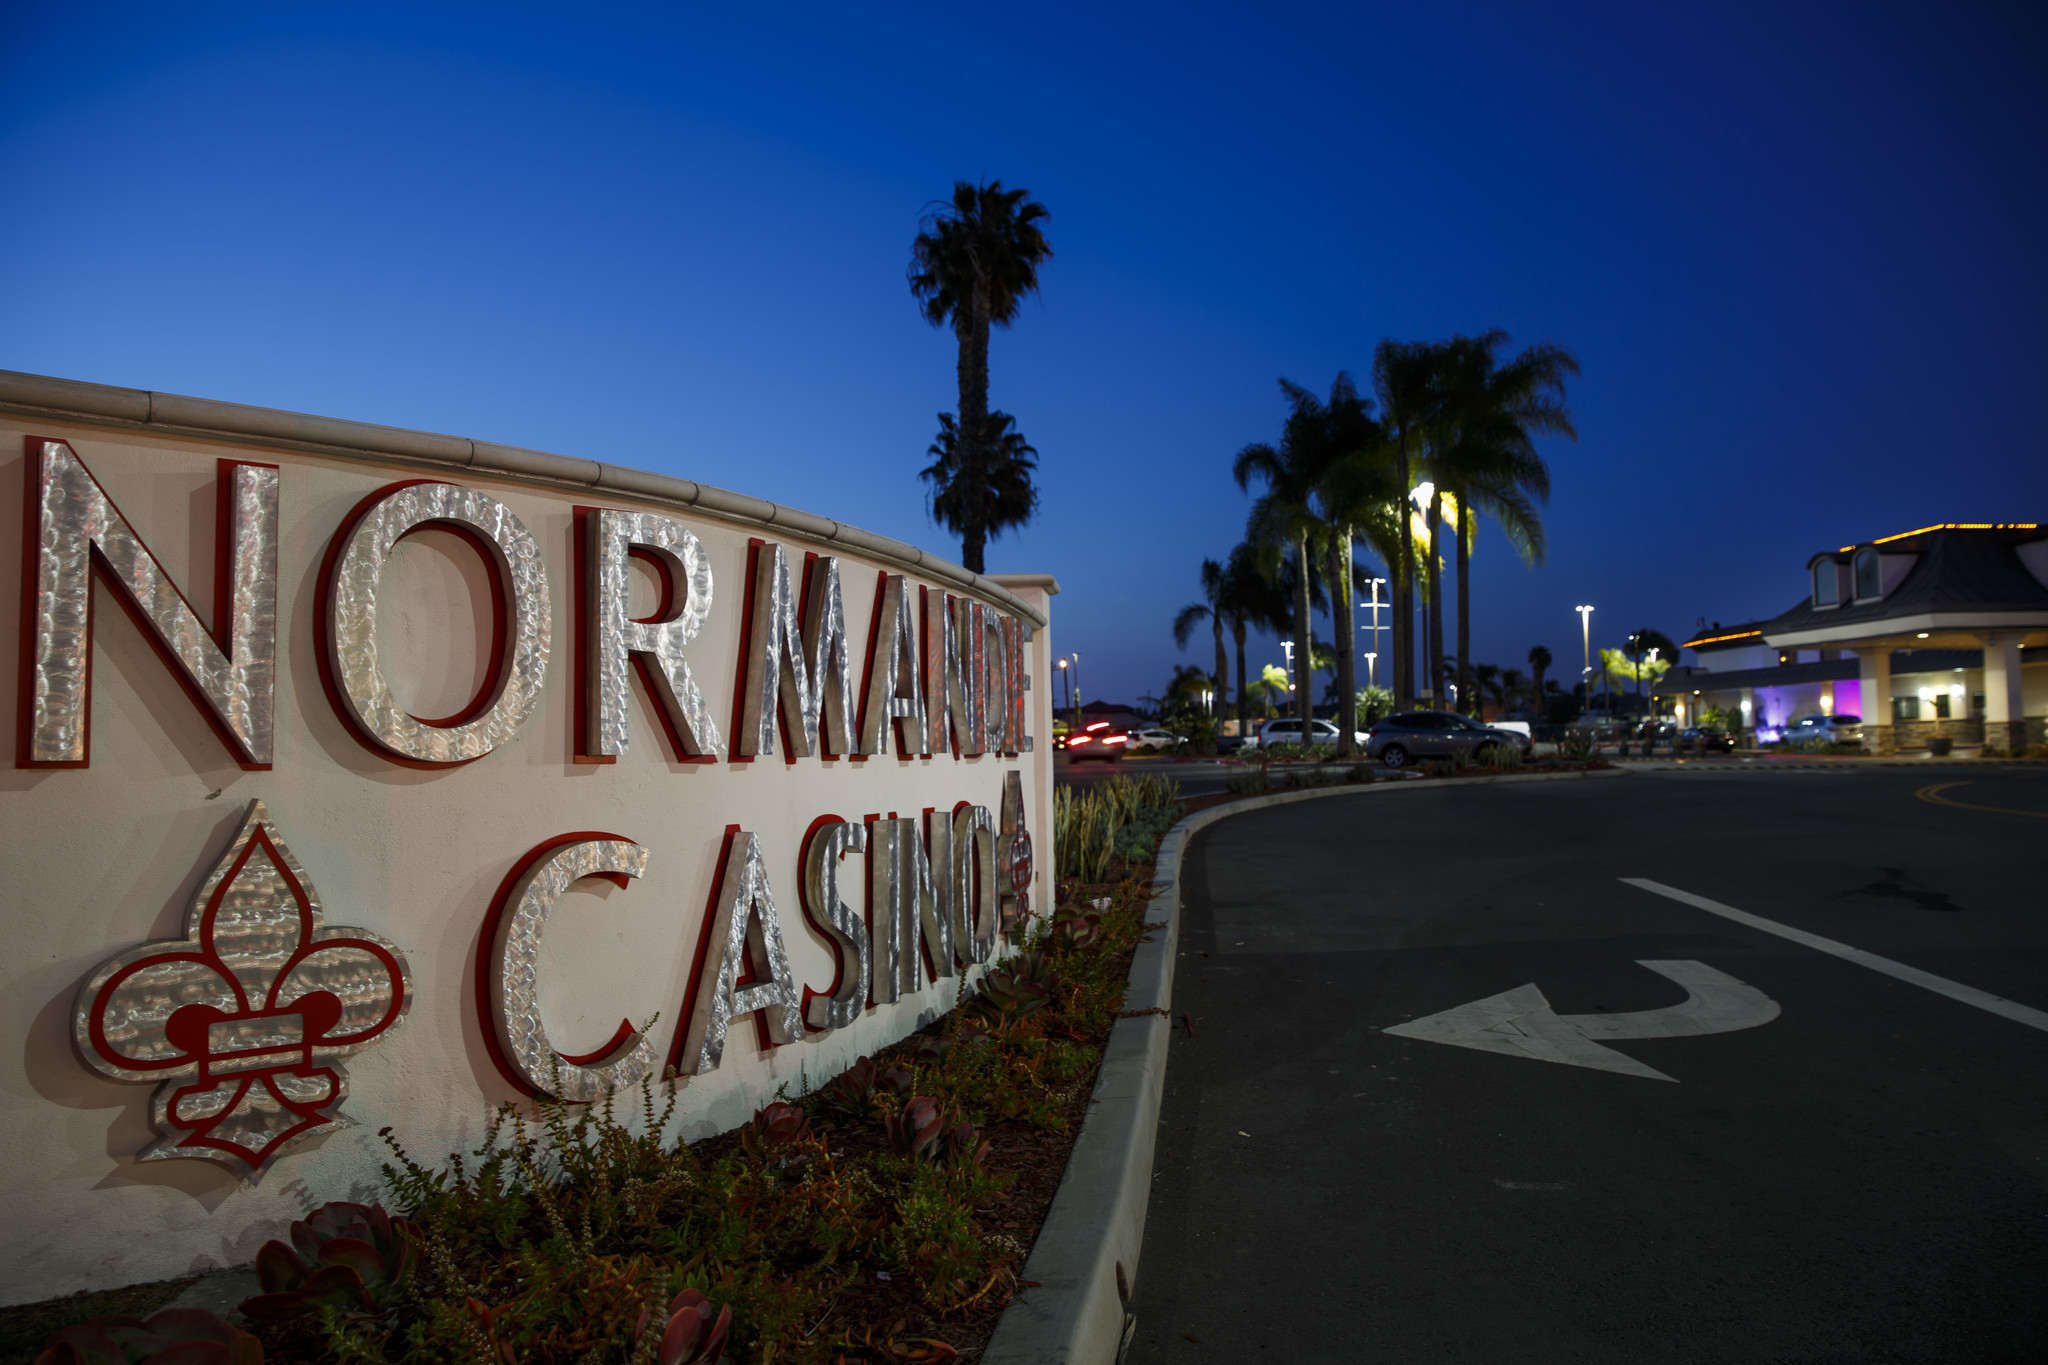 Normandie casino la blackoaks casino